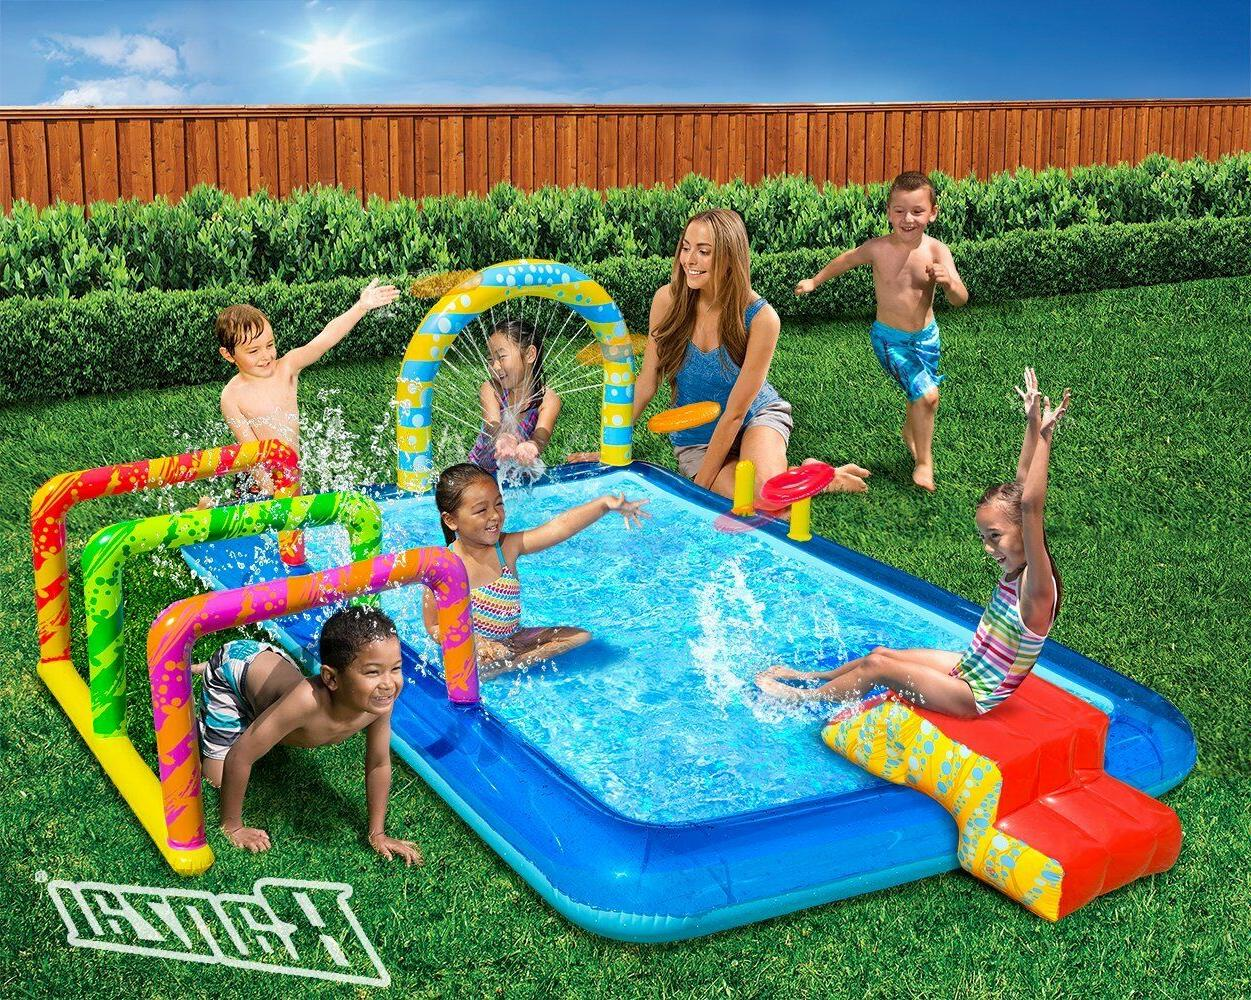 Outdoor Summer Fun Kids Slide